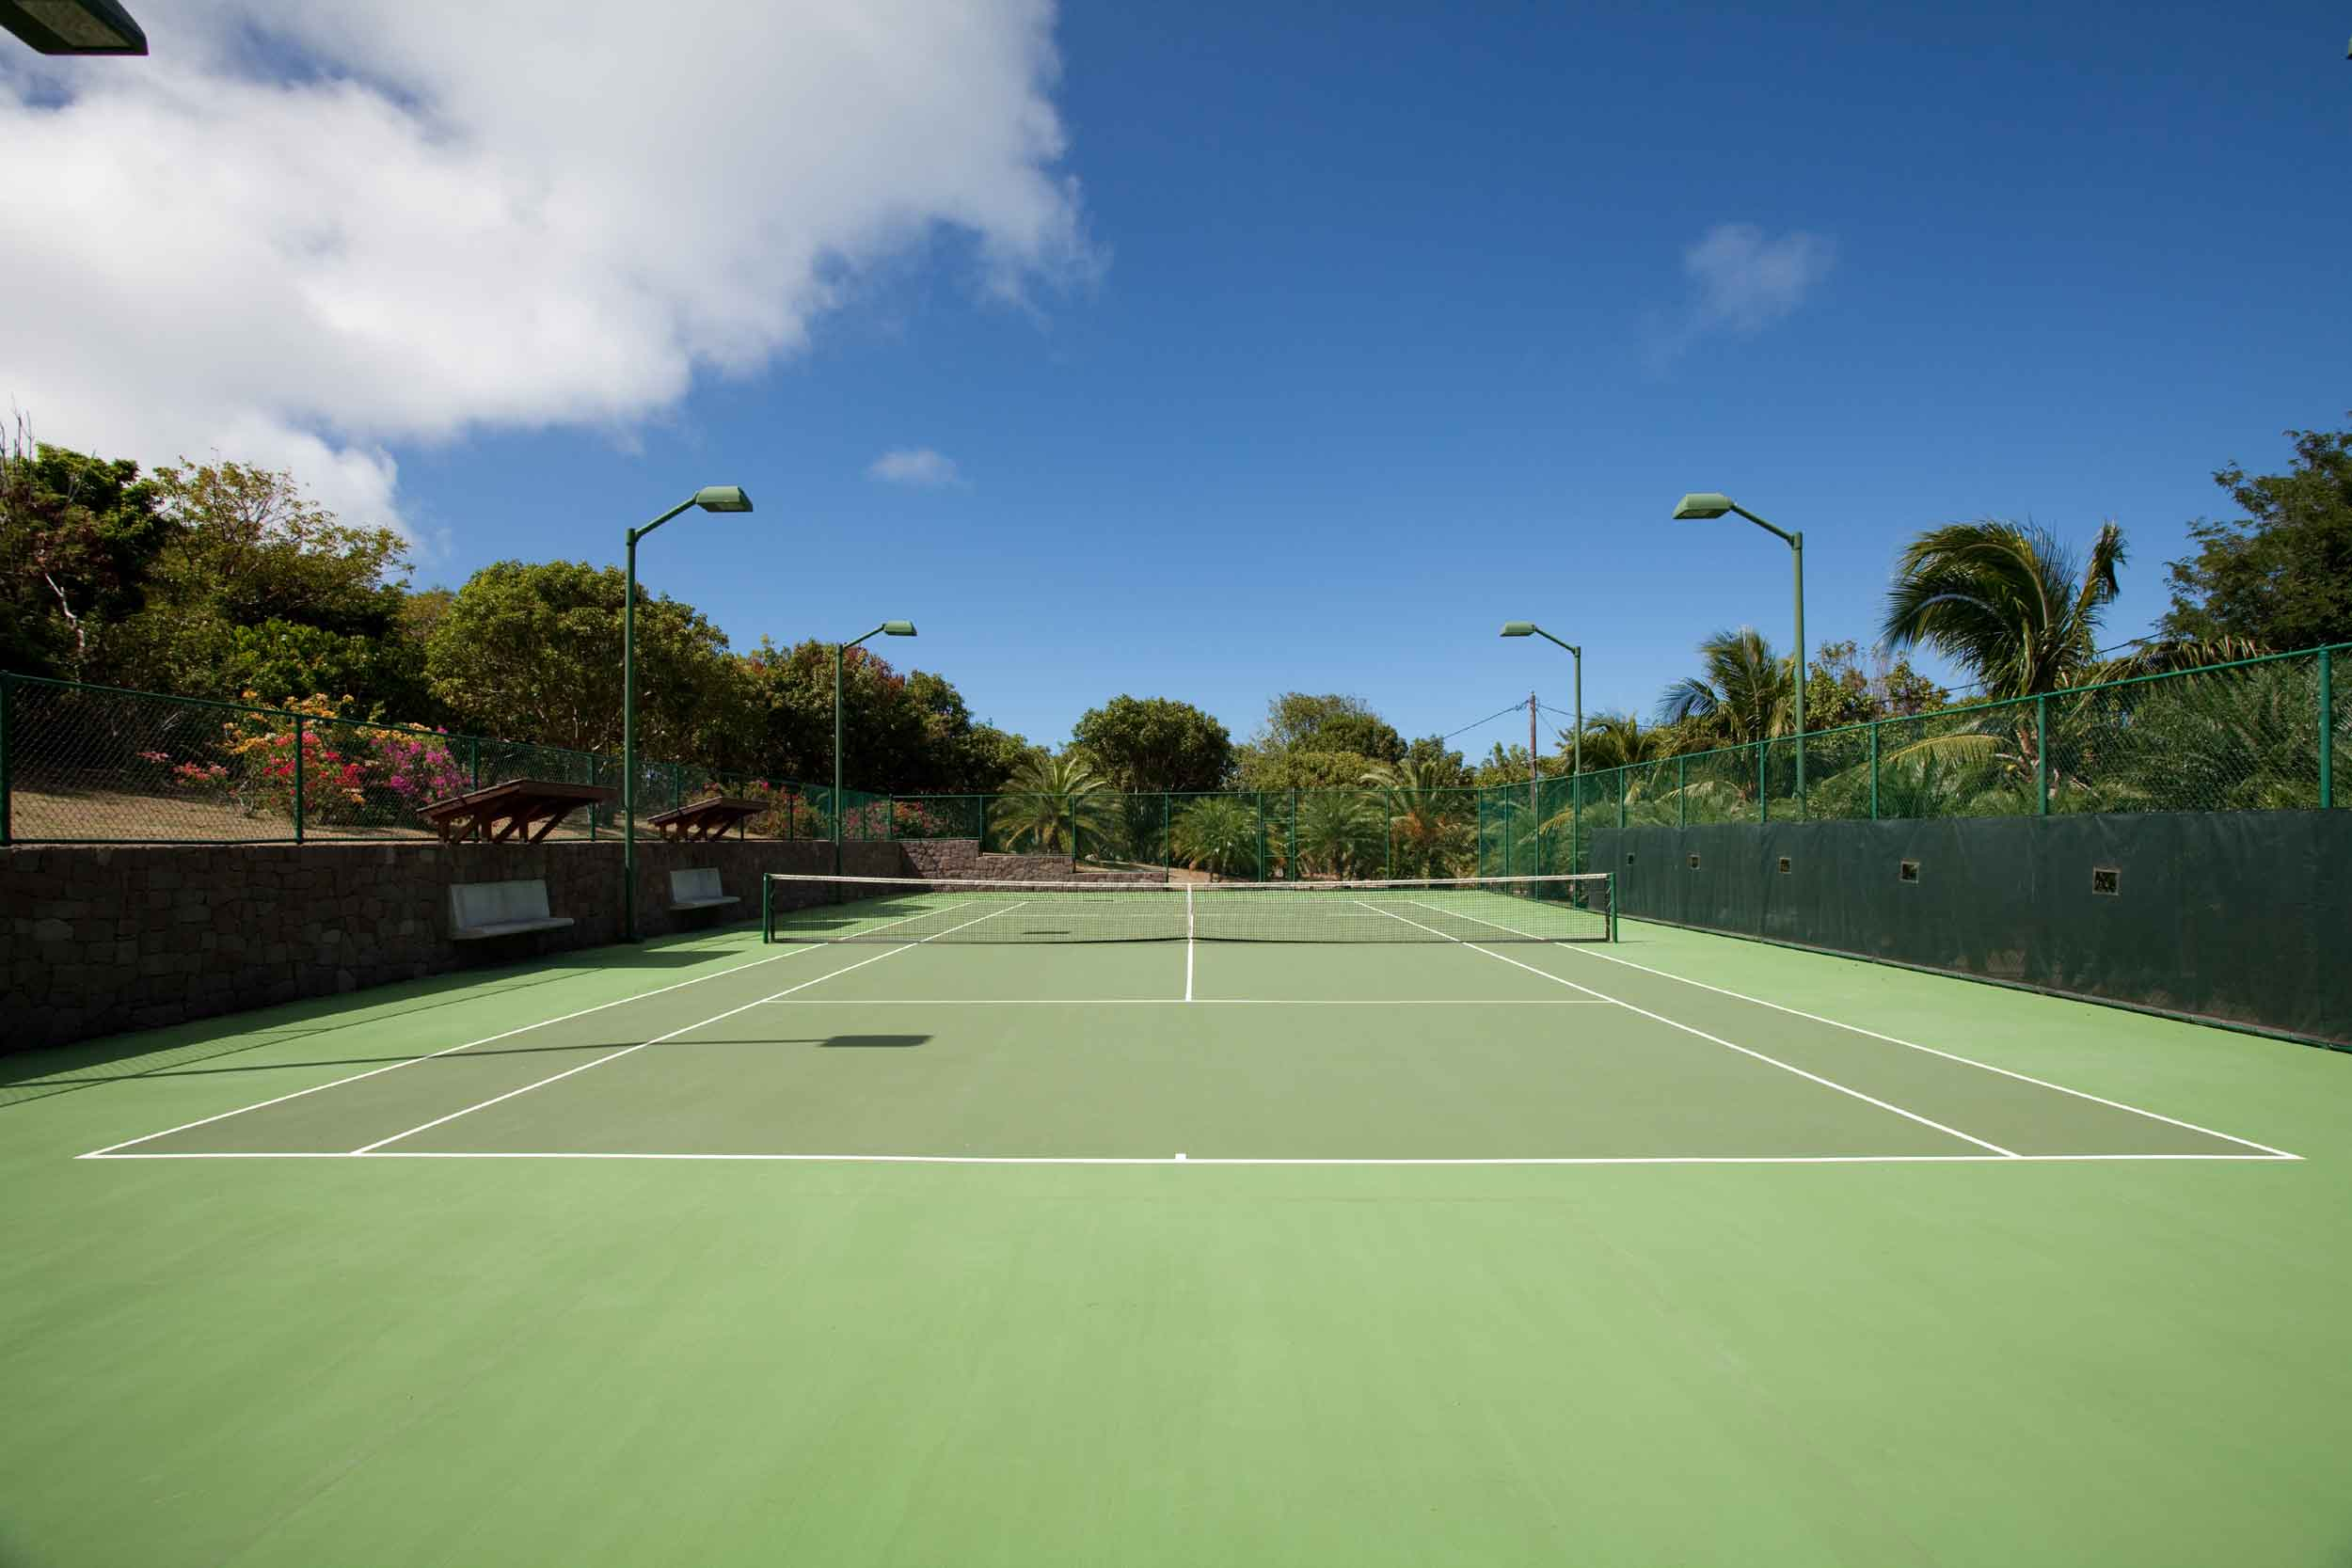 After a rousing set of tennis of the estate's lighted court, the shimmering pool beckons